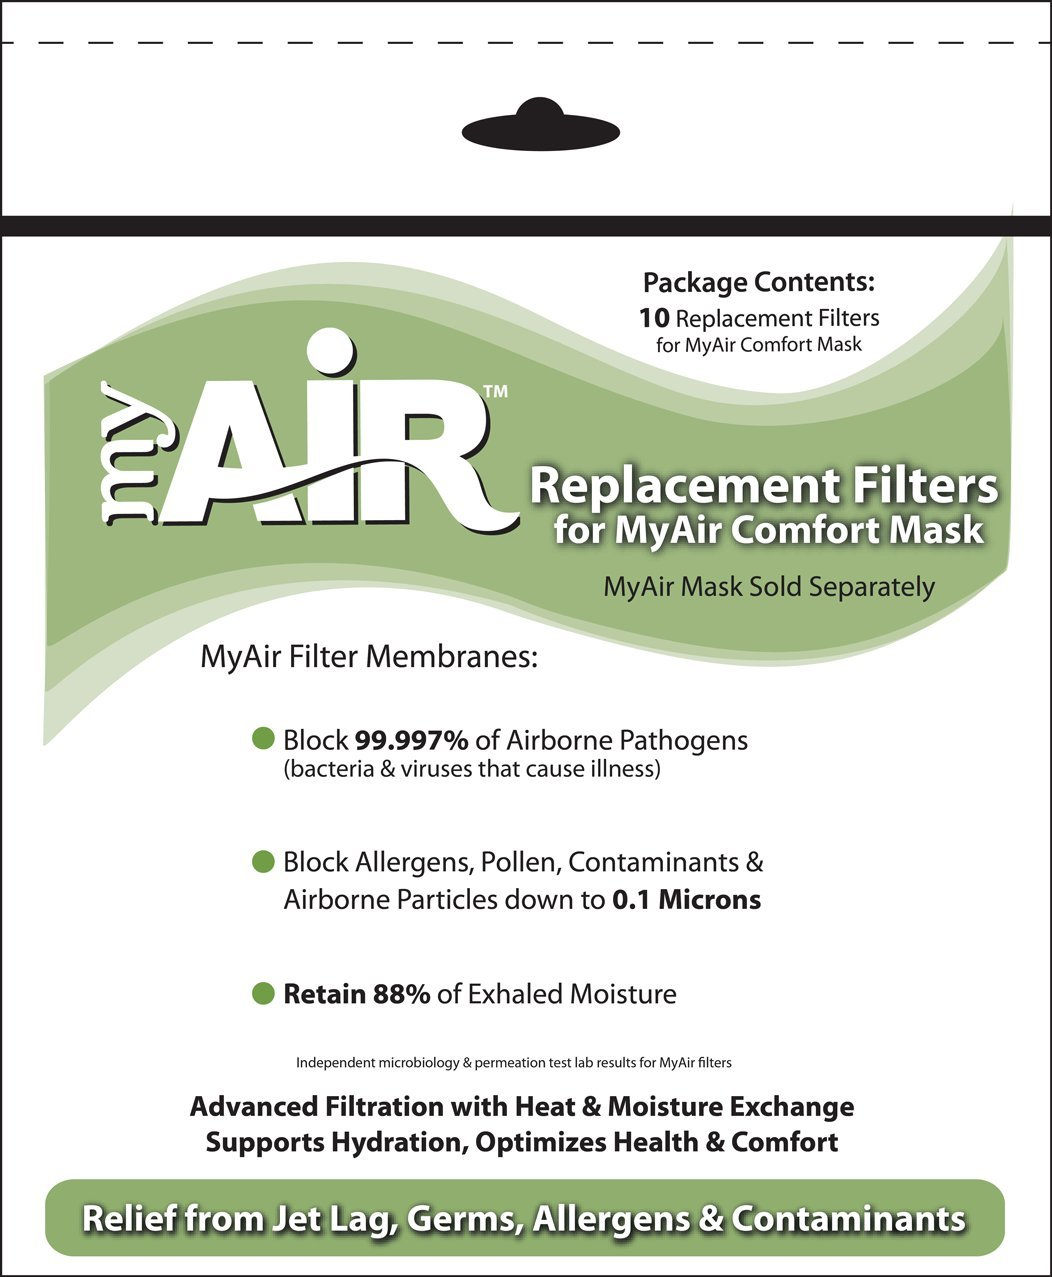 MyAir Comfort Mask Replacement Filters - 10 Pack - Made in USA by MyAir